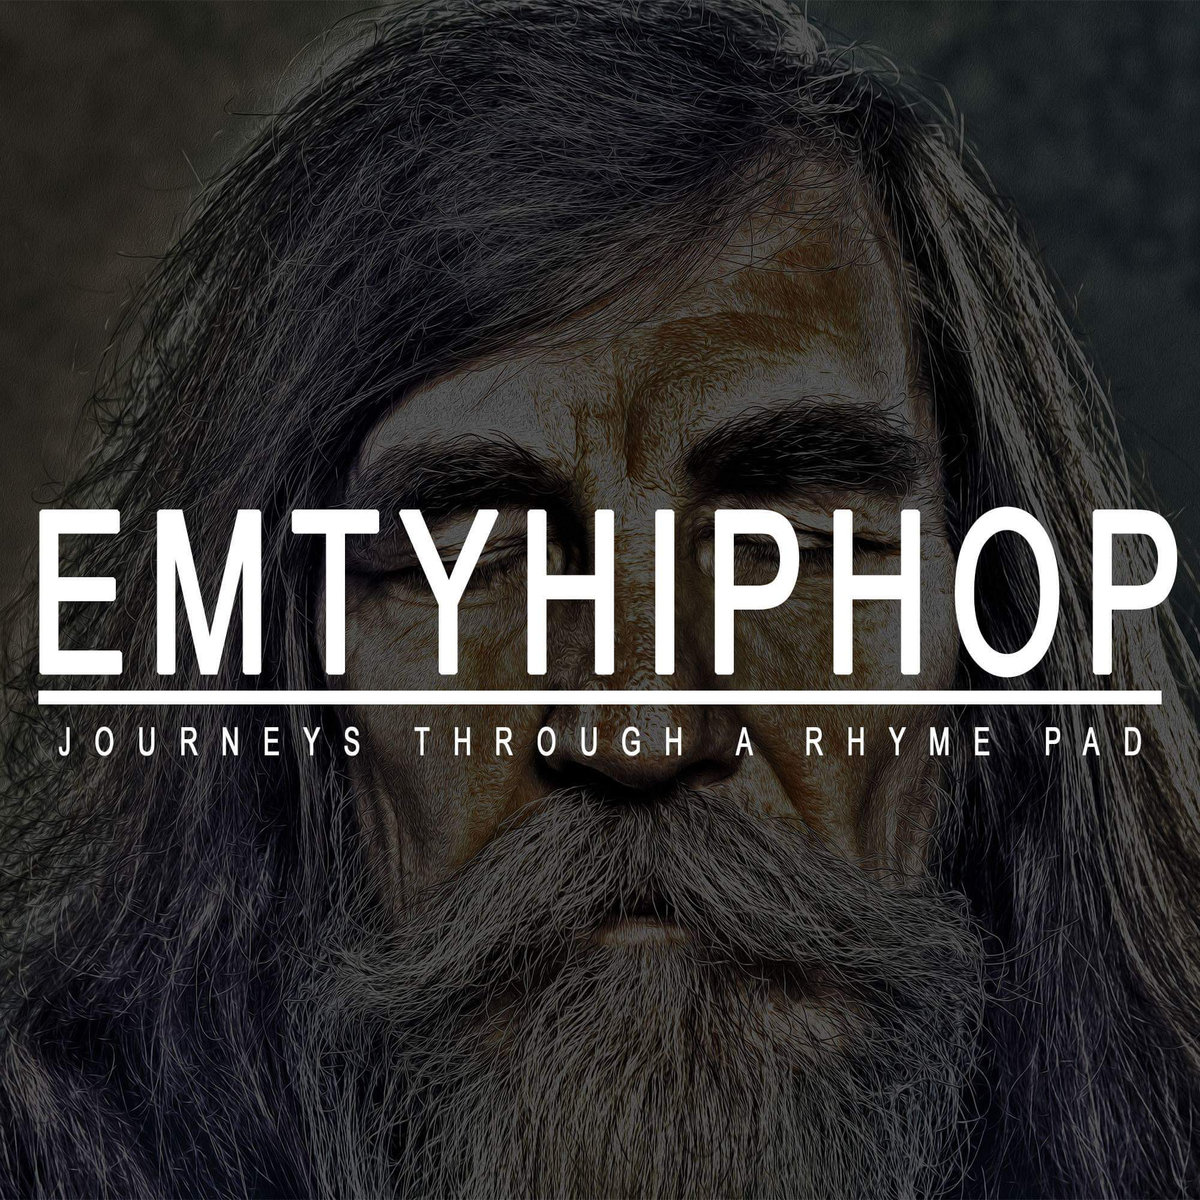 Journeys Through a Rhyme Pad by EmtyHipHop